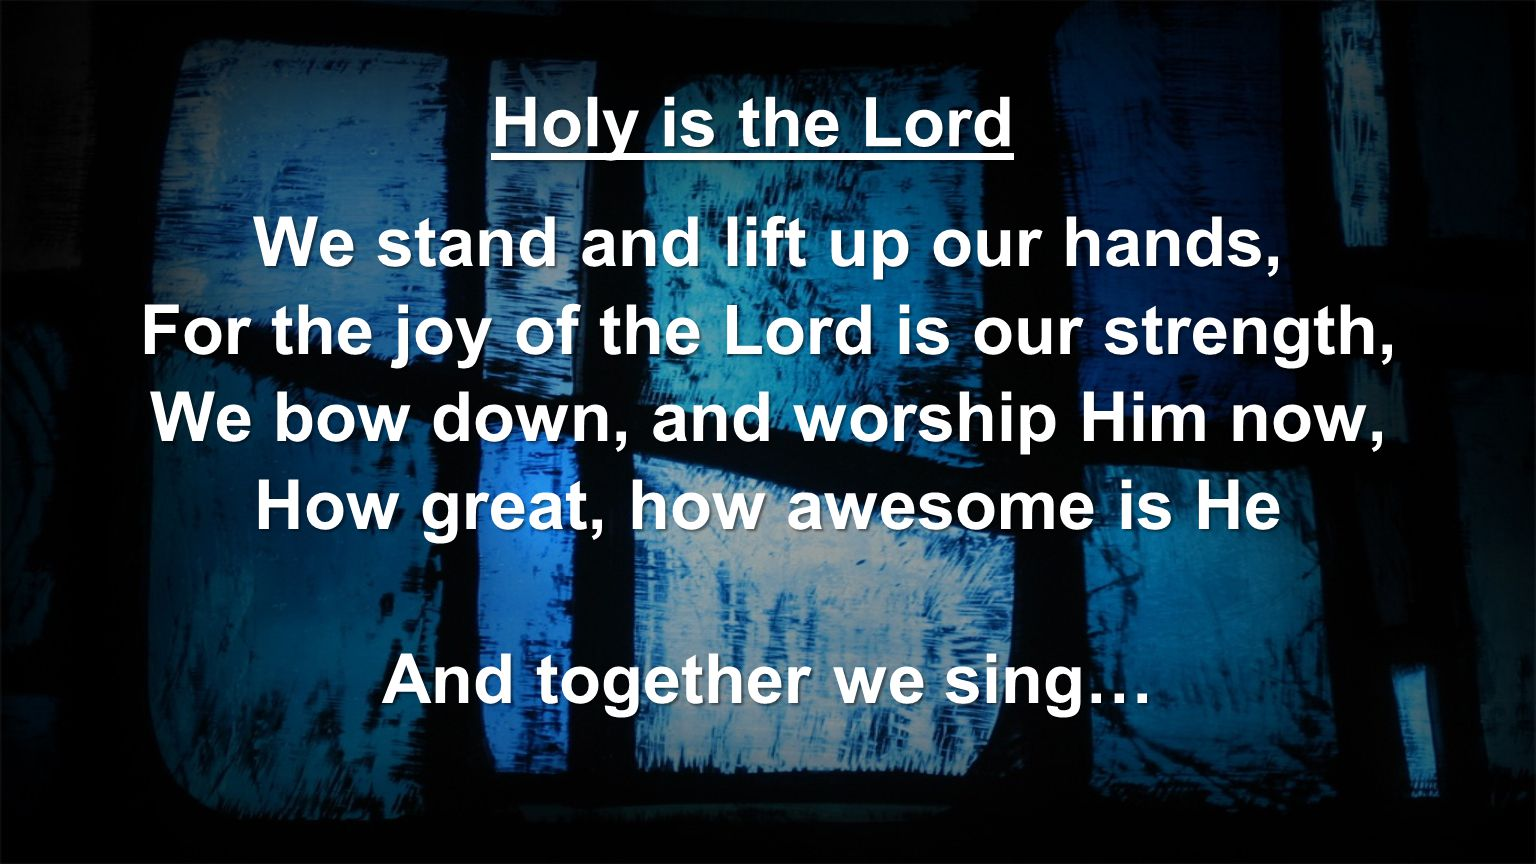 We stand and lift up our hands,